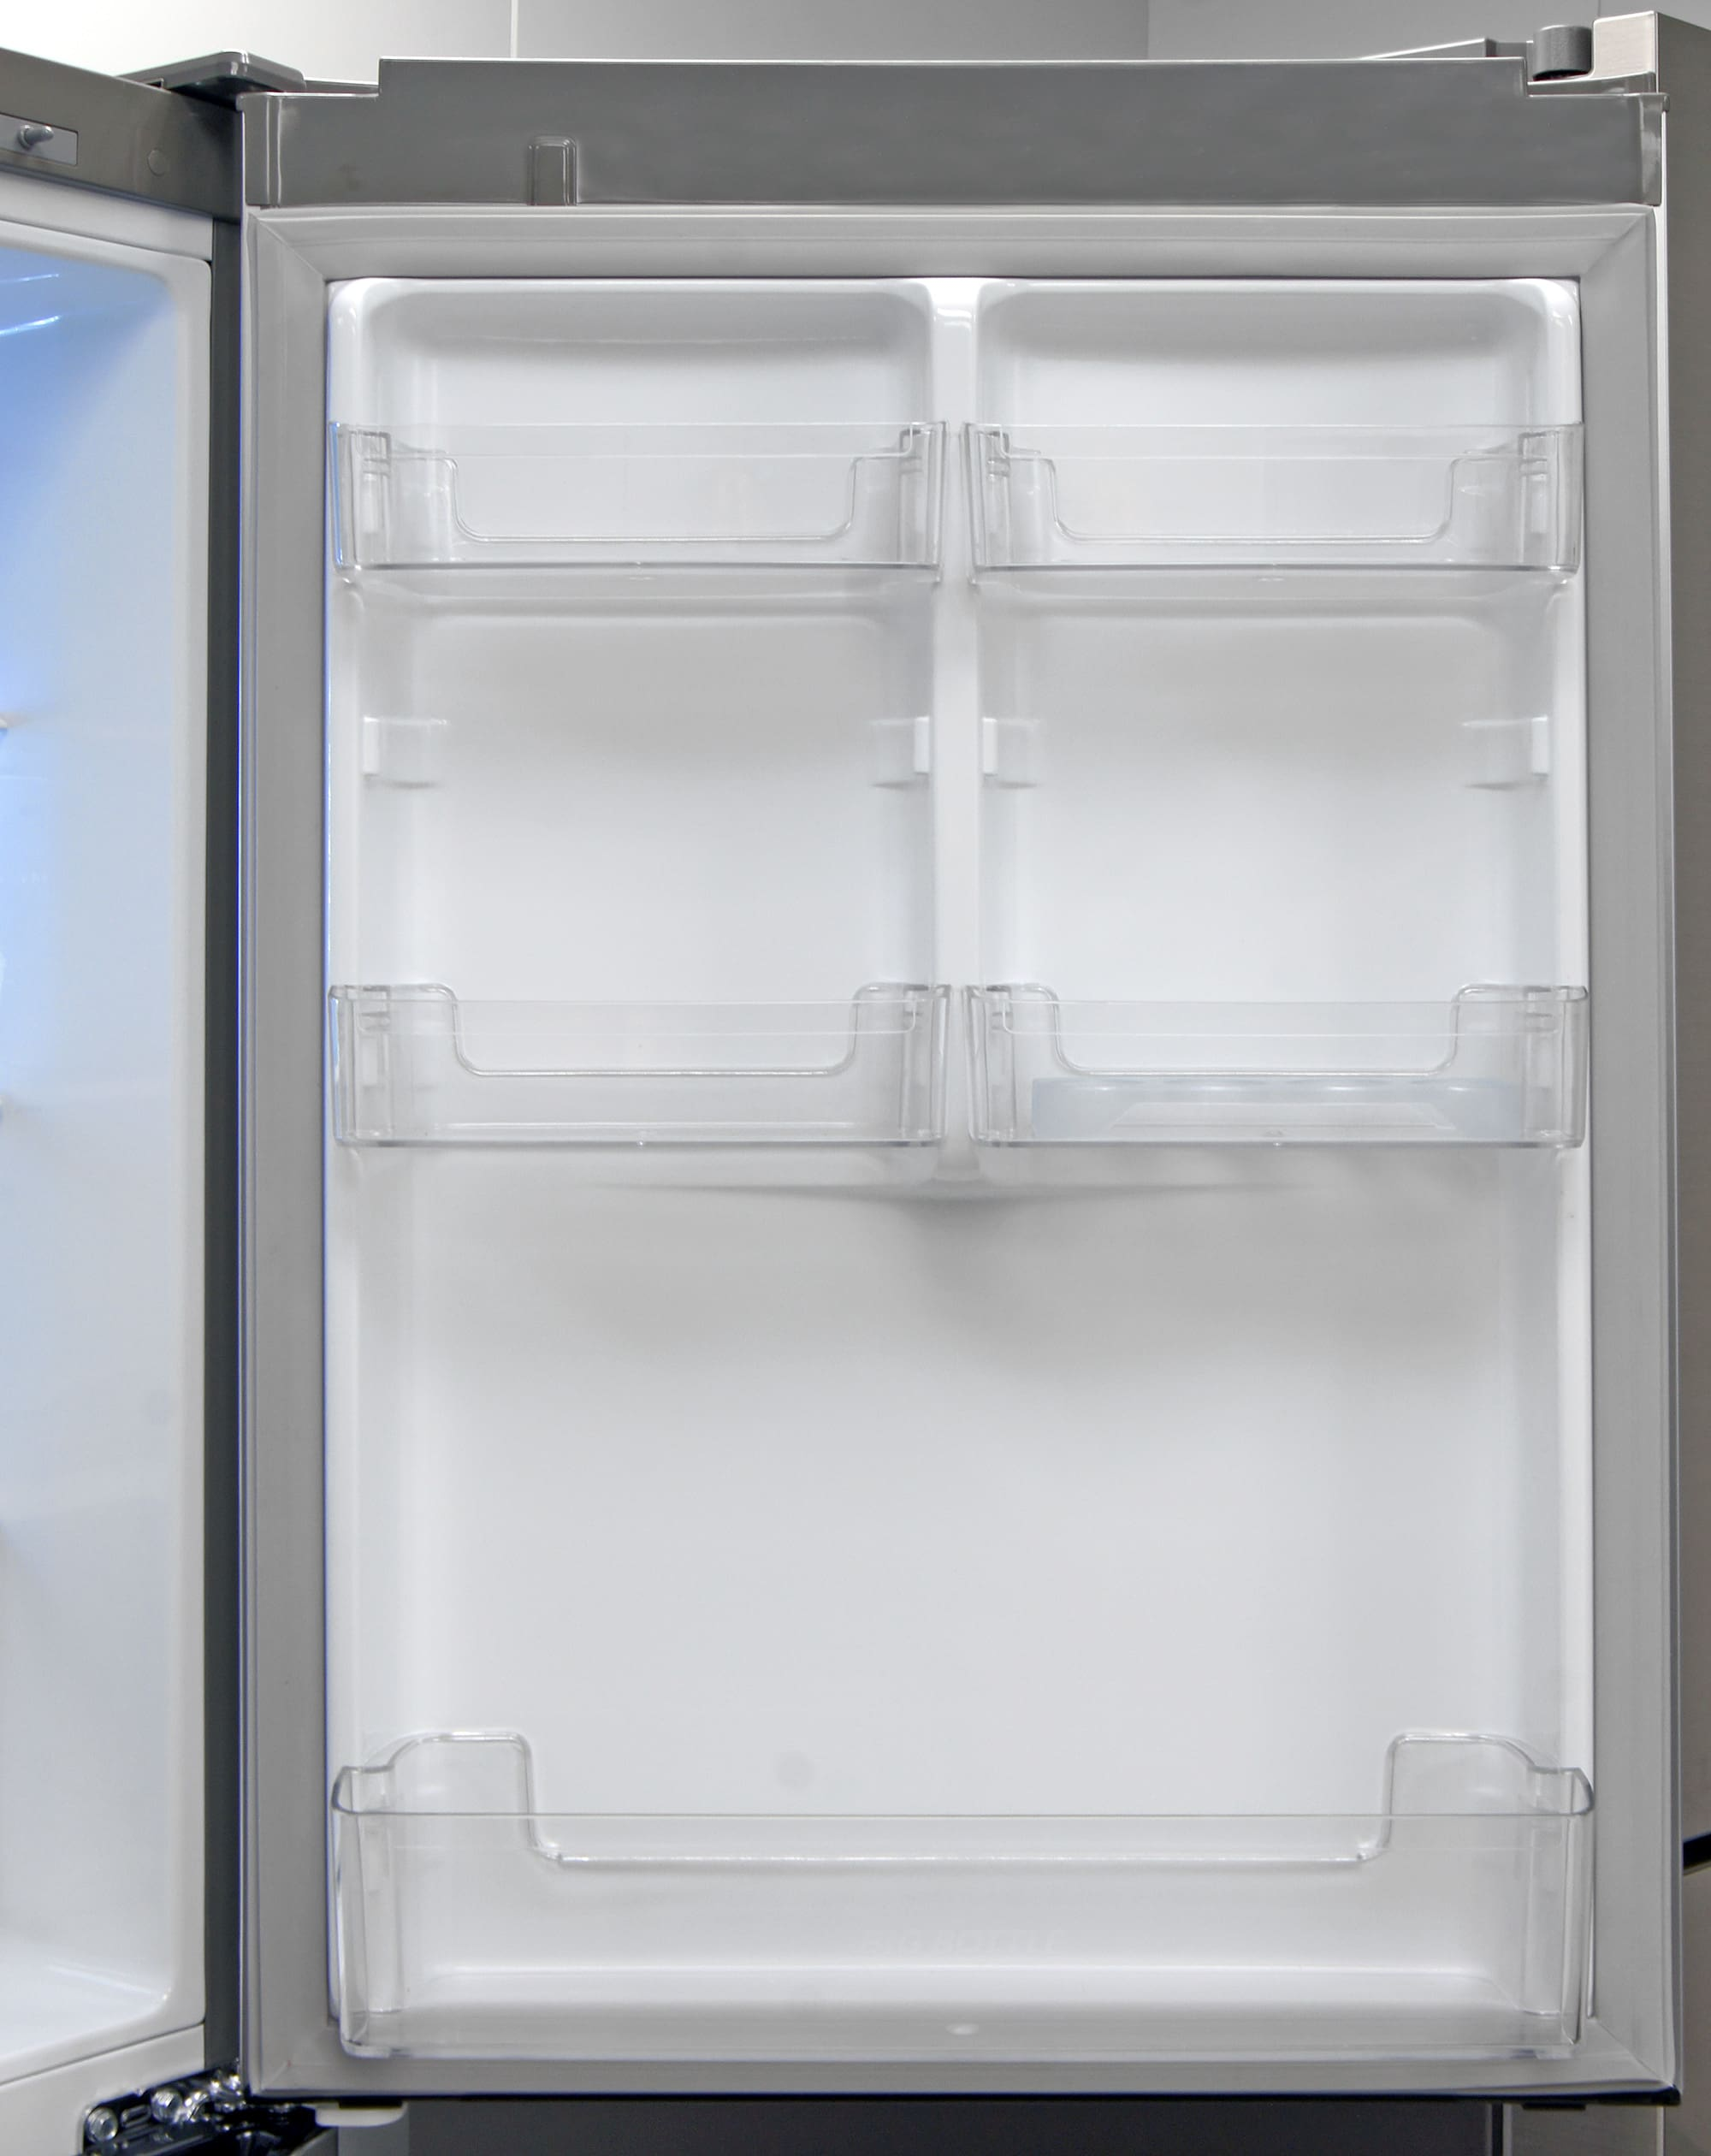 LG LBN10551PV Apartment Refrigerator Review - Reviewed.com Refrigerators